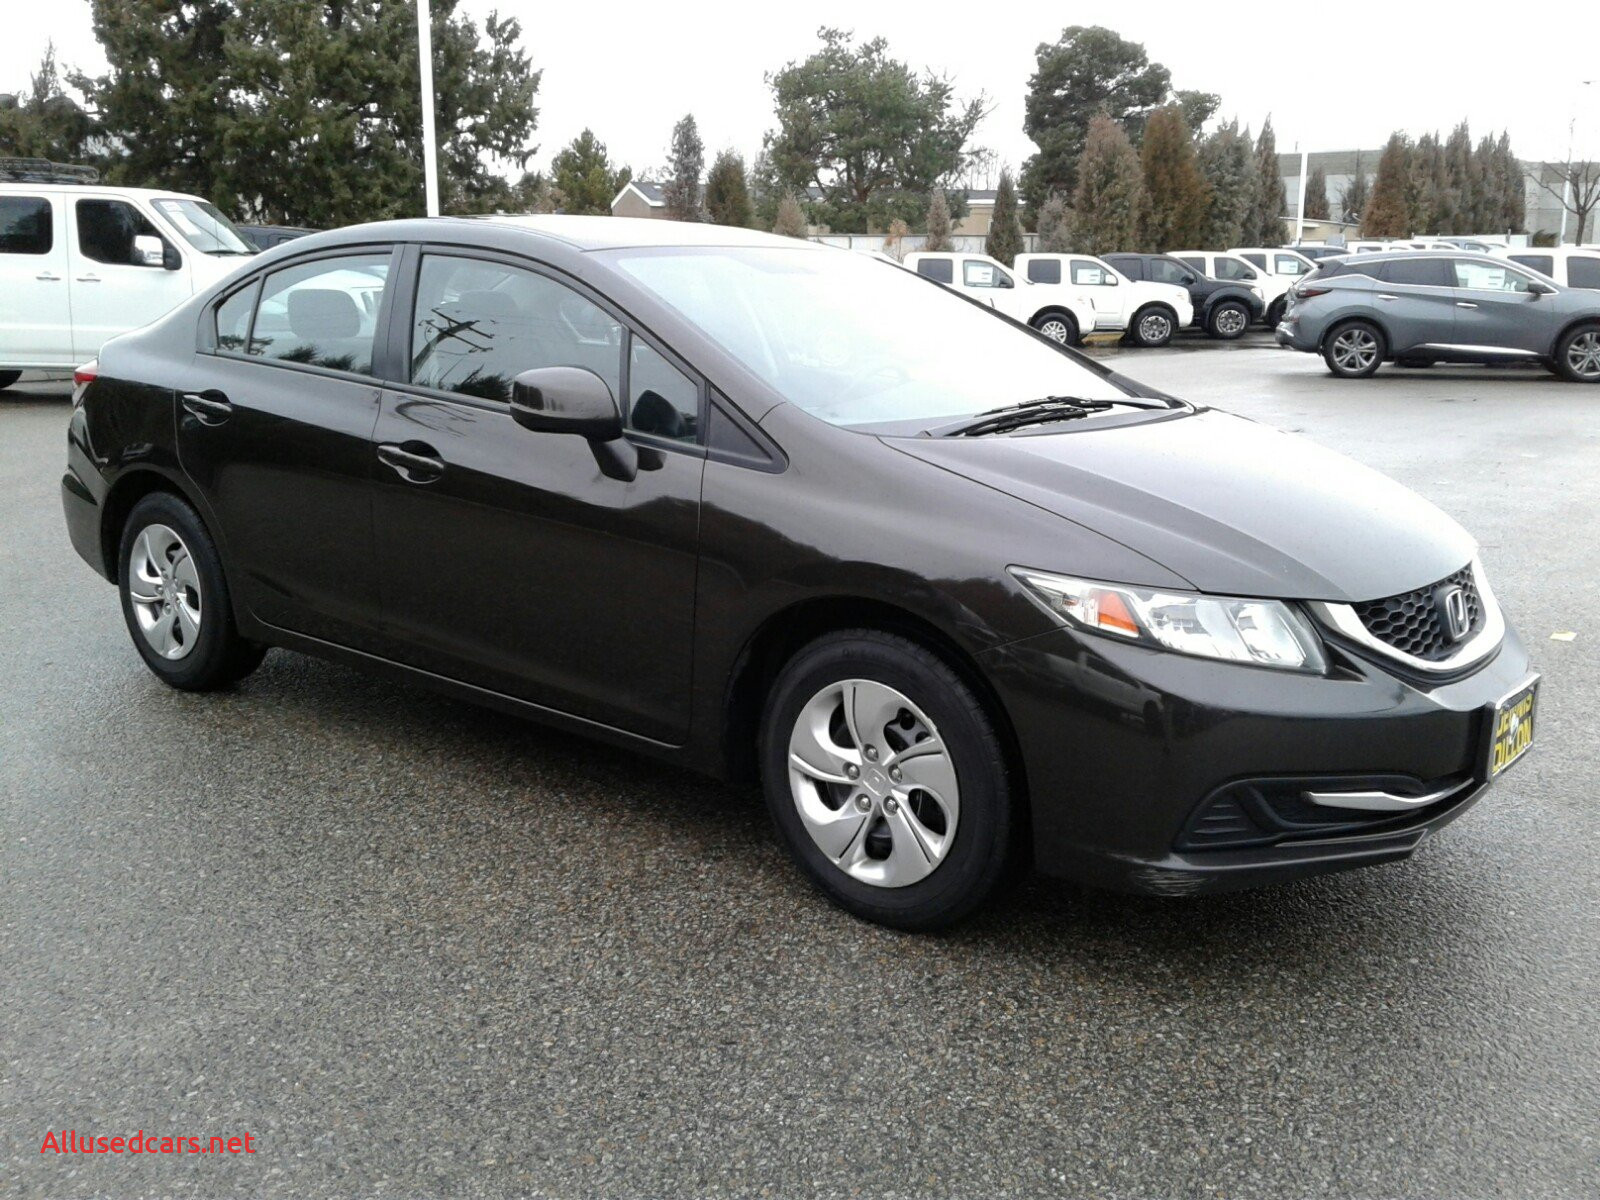 2013 Honda Civic Lx New Pre Owned 2013 Honda Civic Sdn Lx Fwd 4dr Car